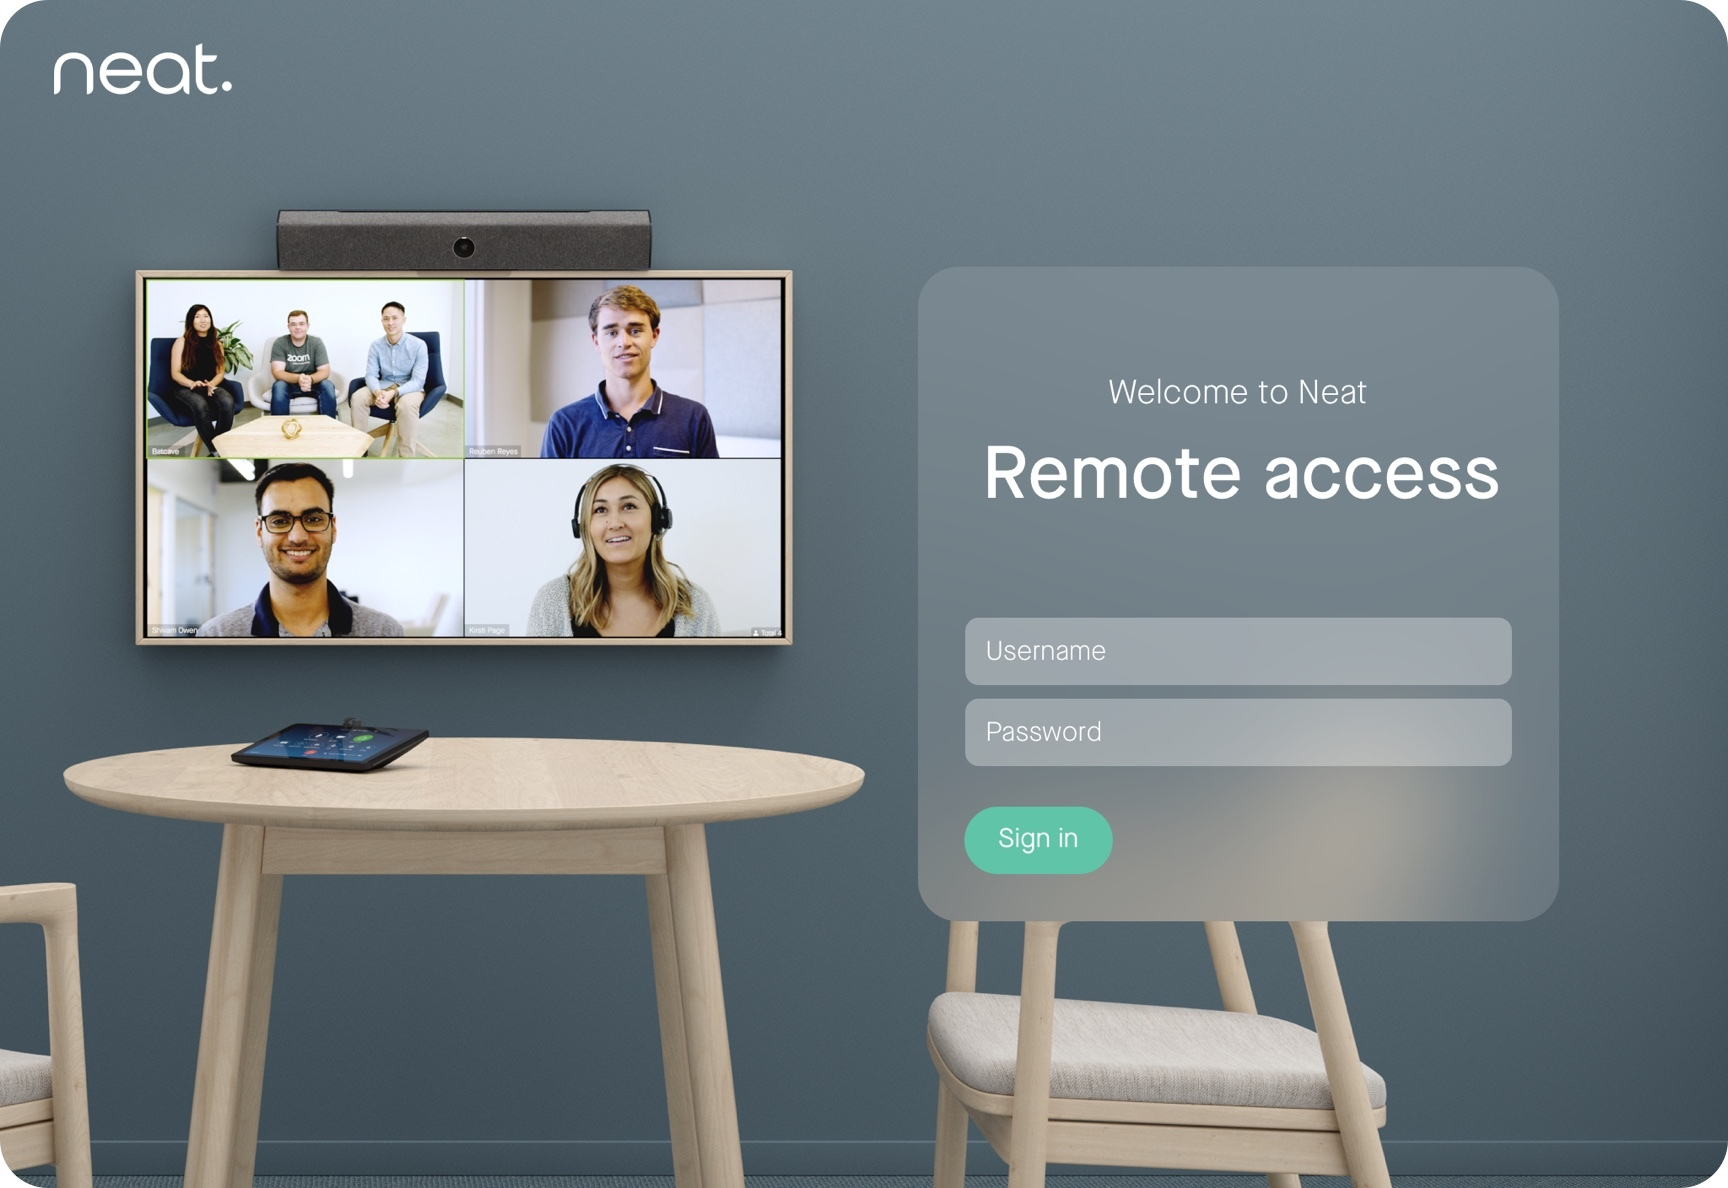 How to enable Remote access on Neat